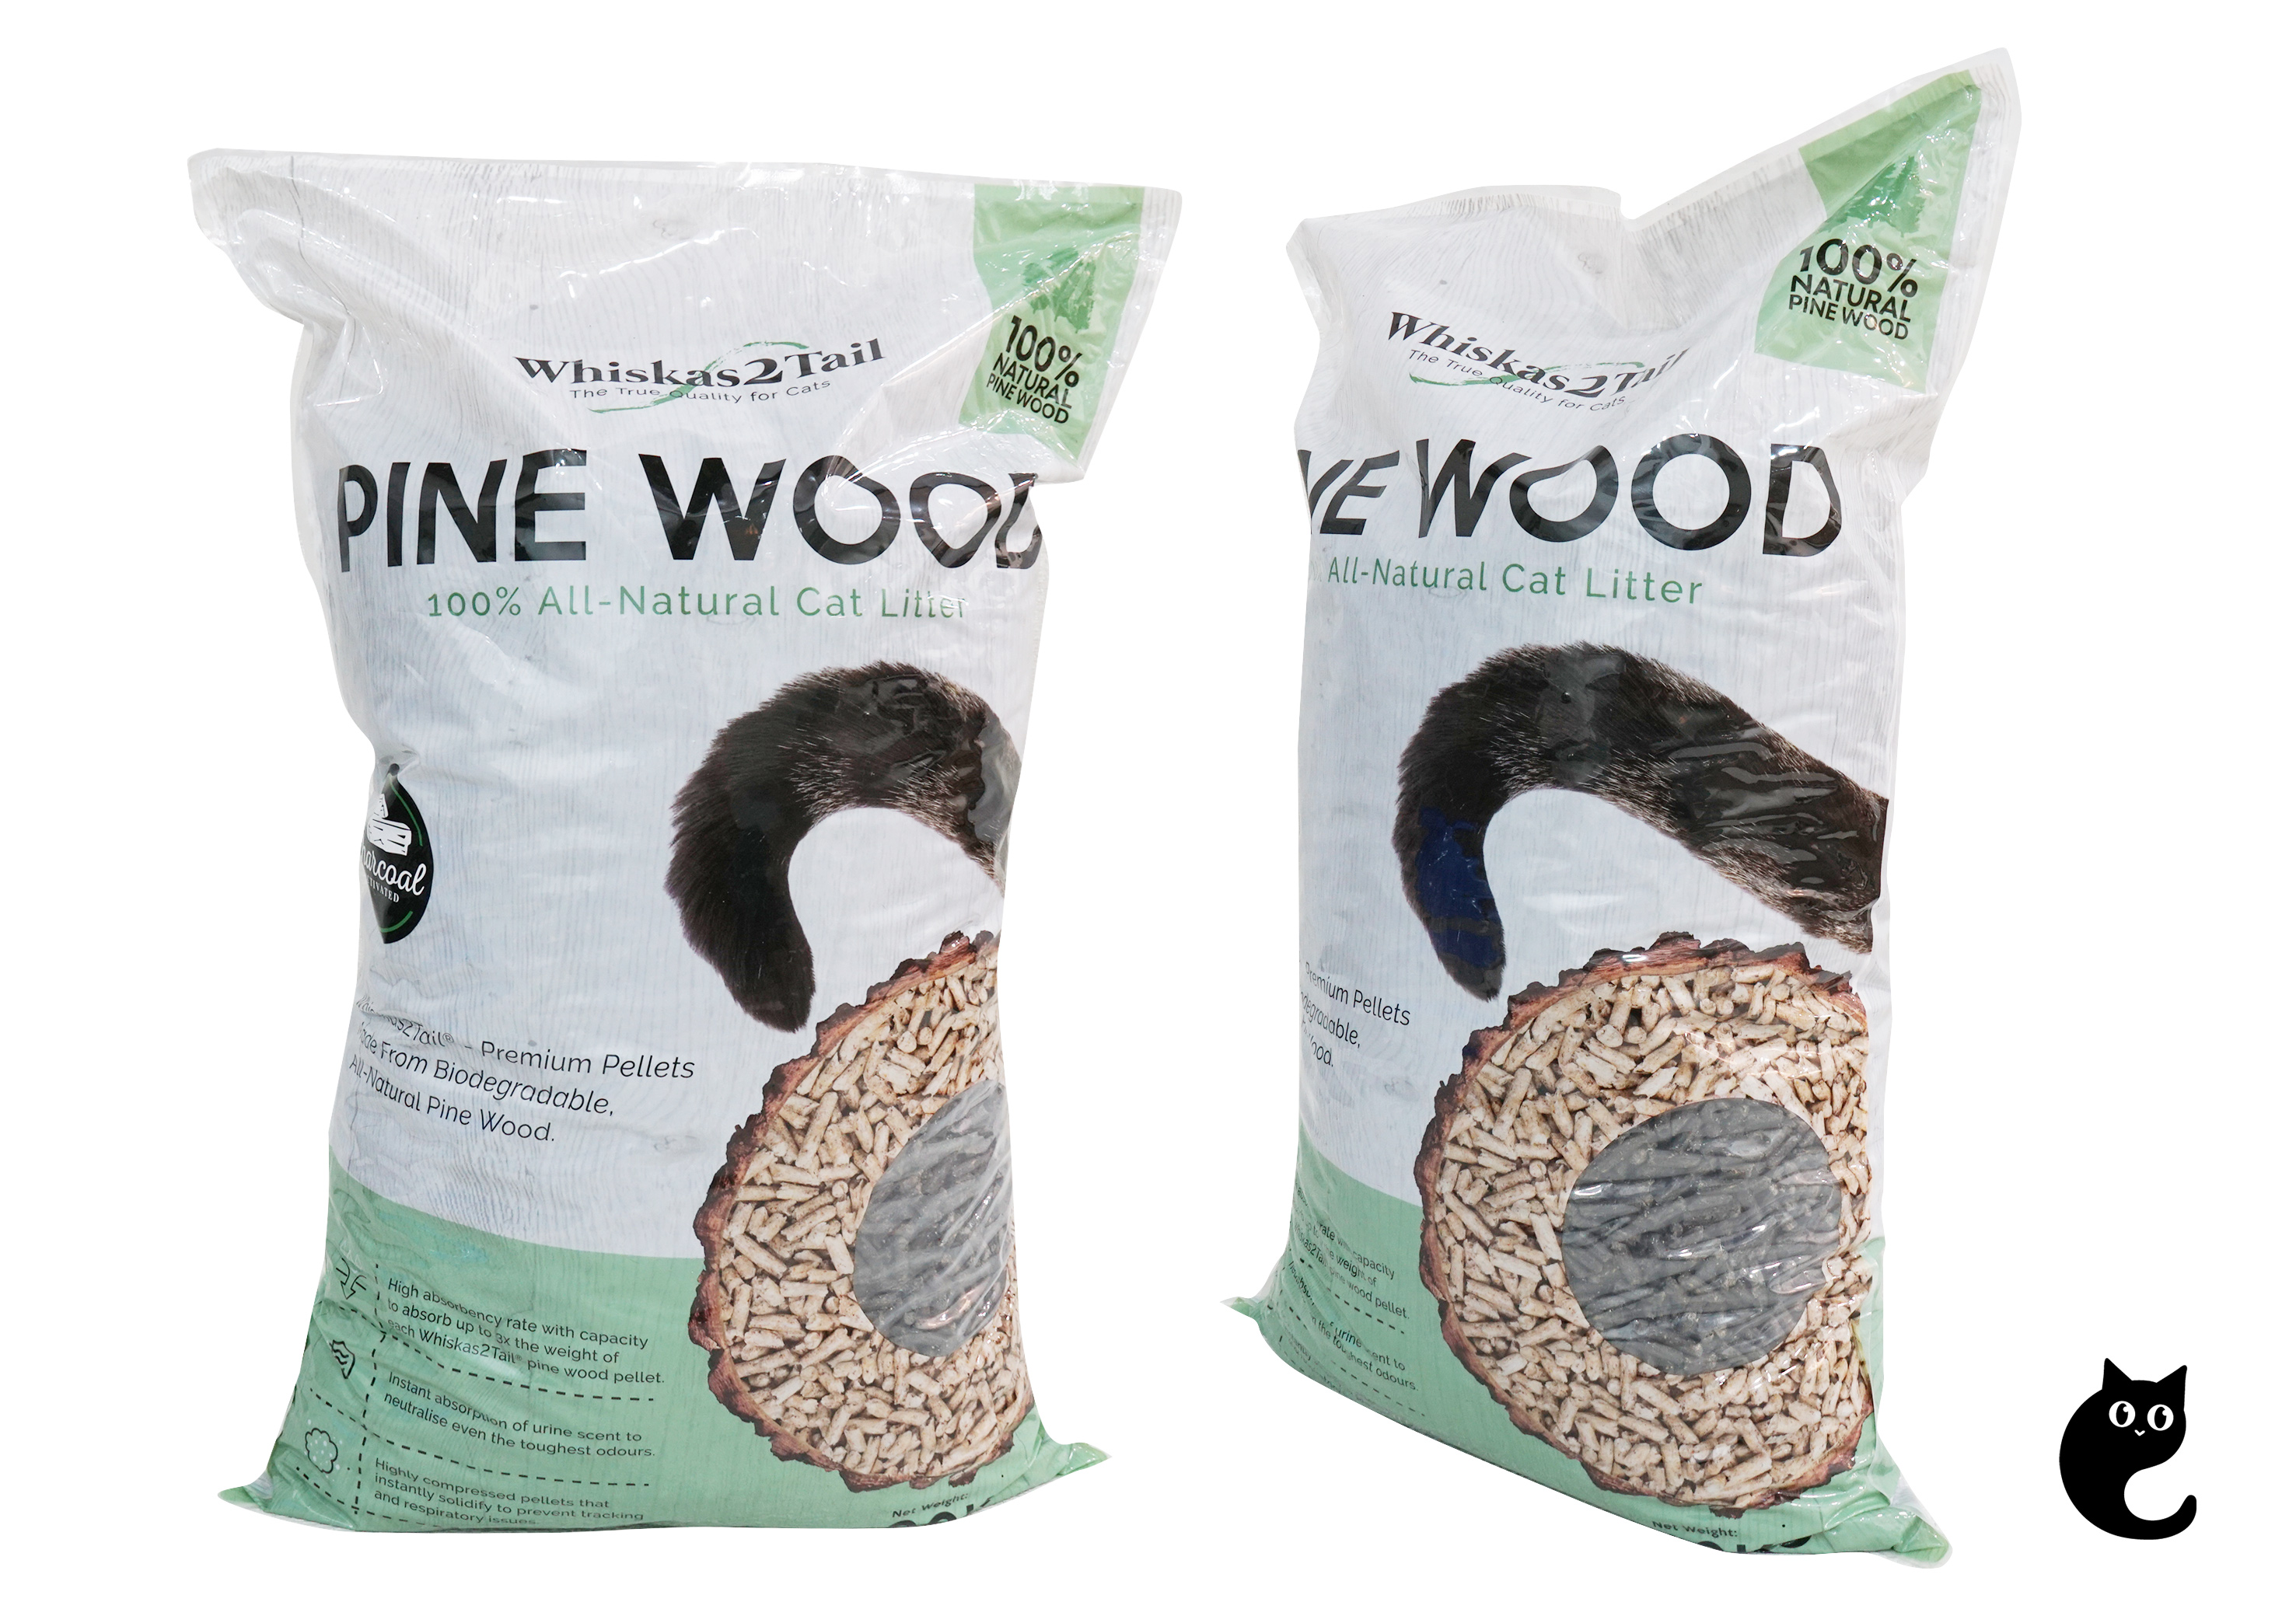 Heed Nature's Call With This All-Natural Pine Wood Litter